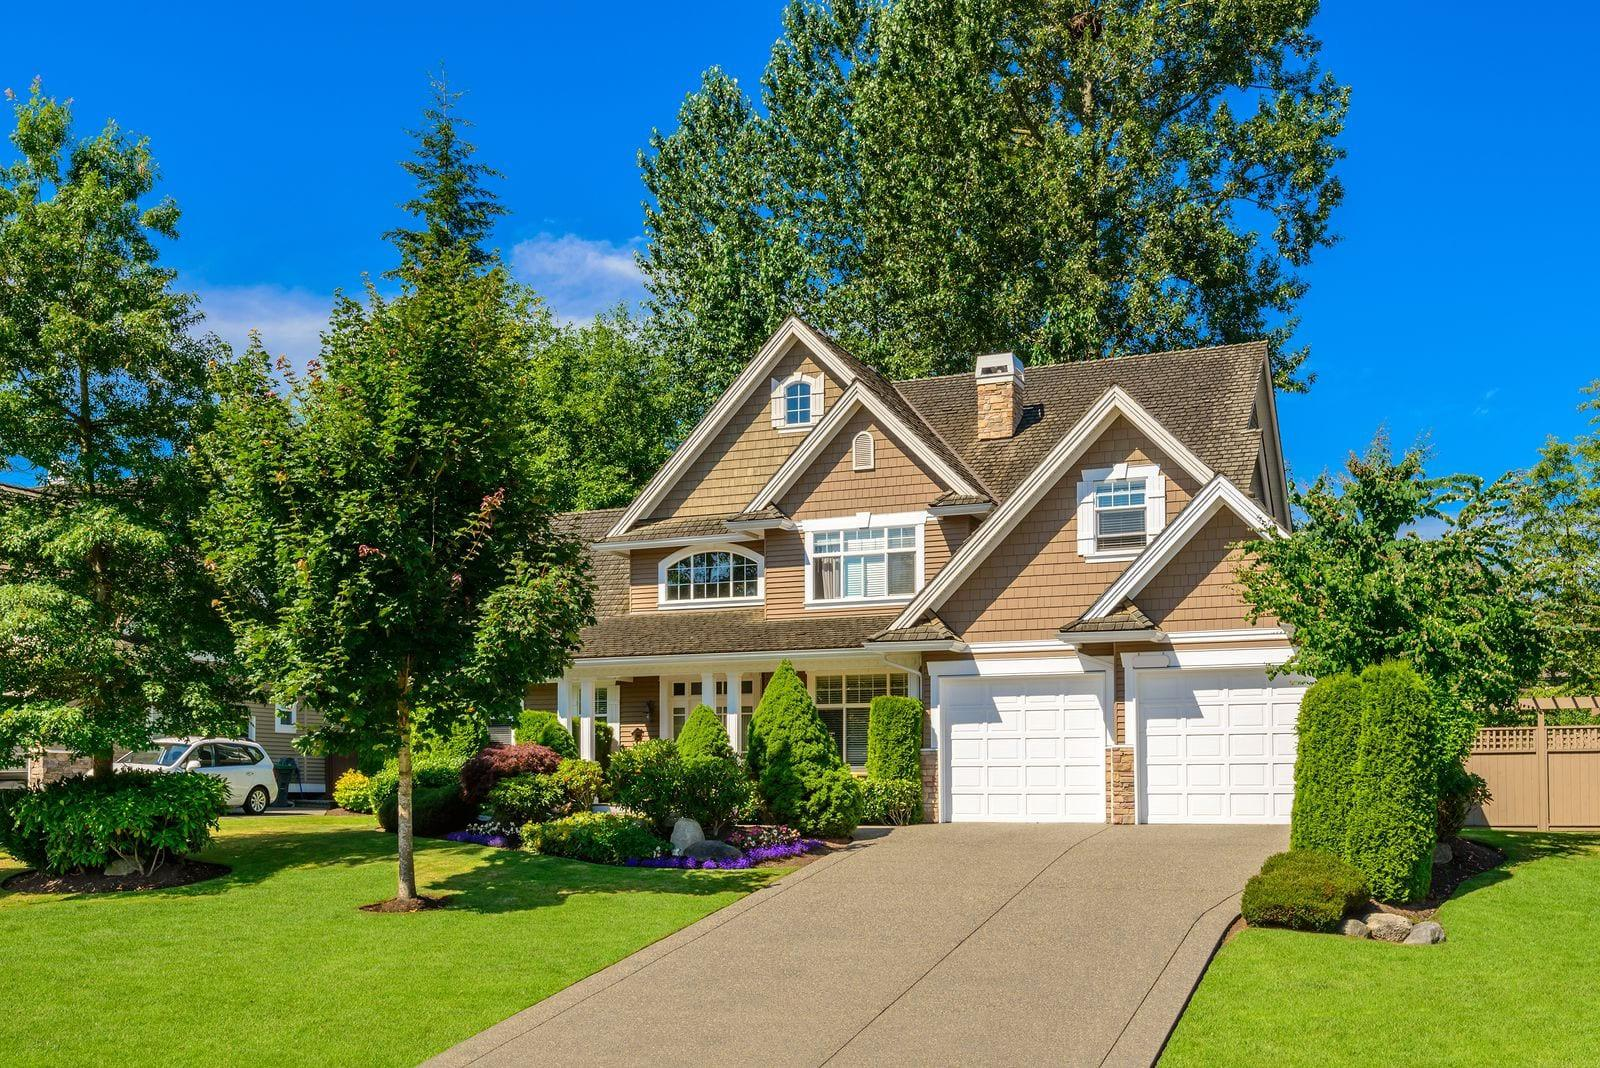 The Suburban Real Estate Boom Is Only Continuing!